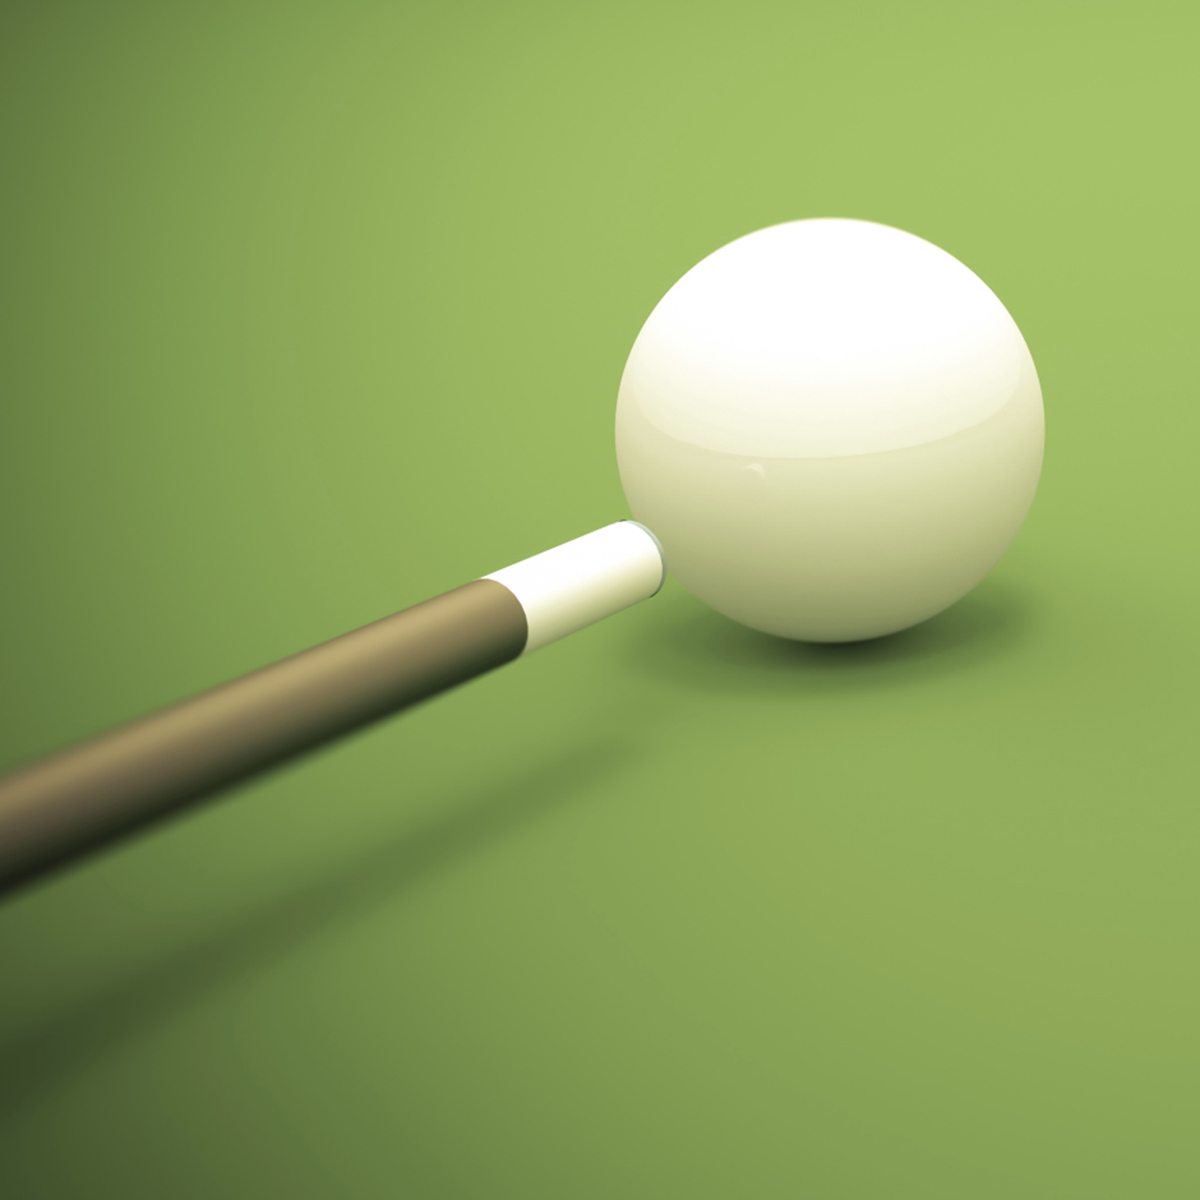 TABLE TENNIS: Mathew Davies leads Drayton to victory